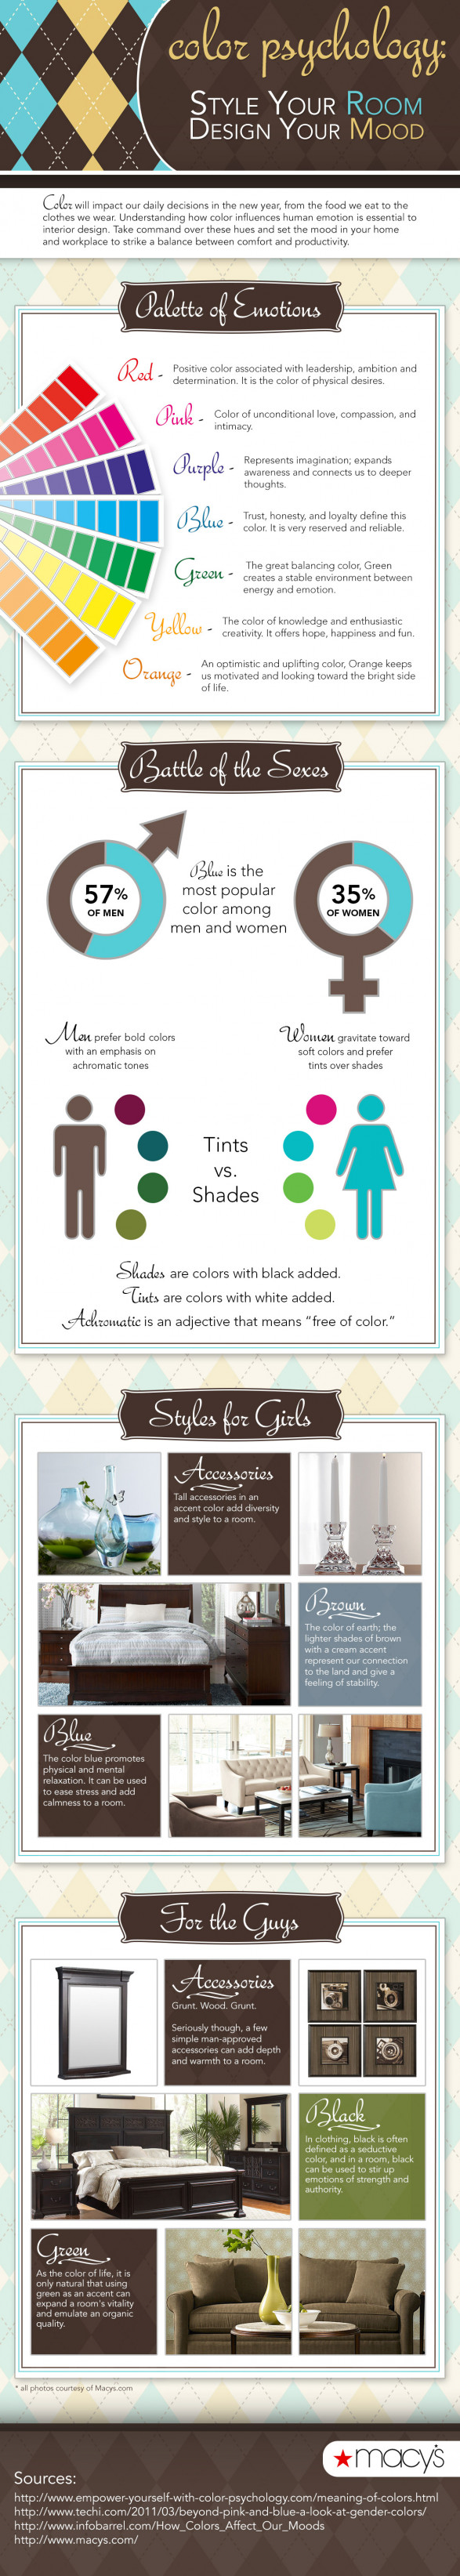 Color Psychology: Style Your Room, Design Your Mood